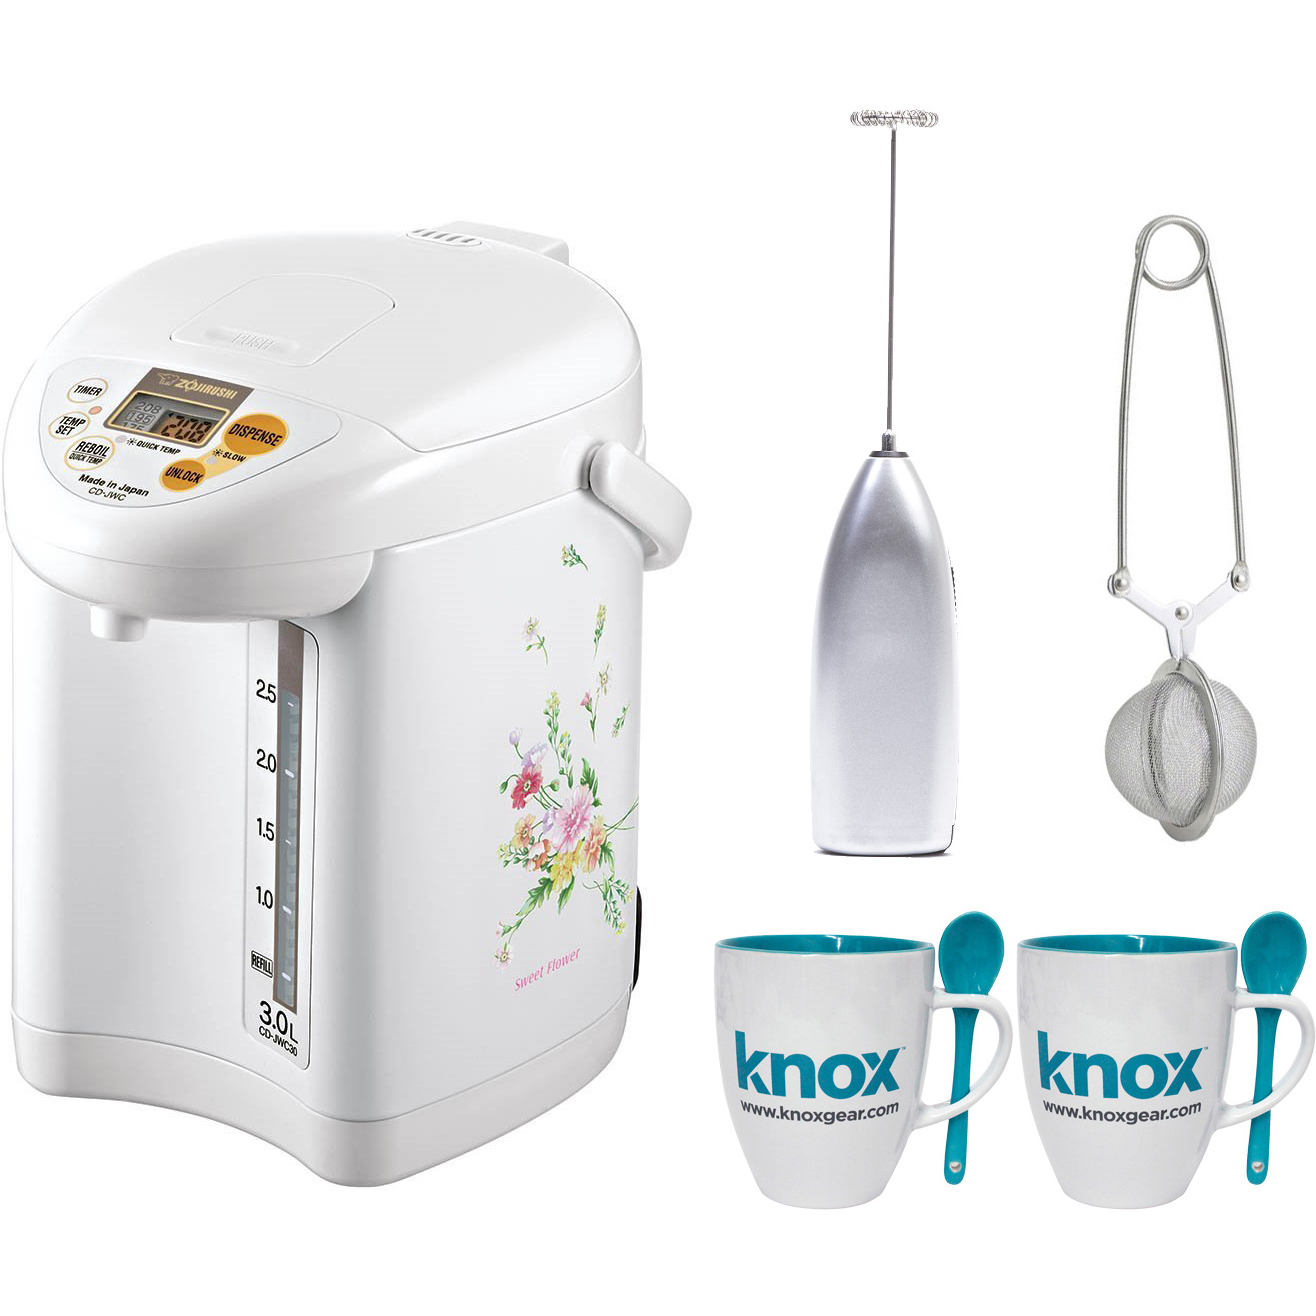 Zojirushi CD-JWC30 Micom Water Boiler and Warmer, Natural Bouquet + Free Knox Mugs, Frother and Tea Infuser